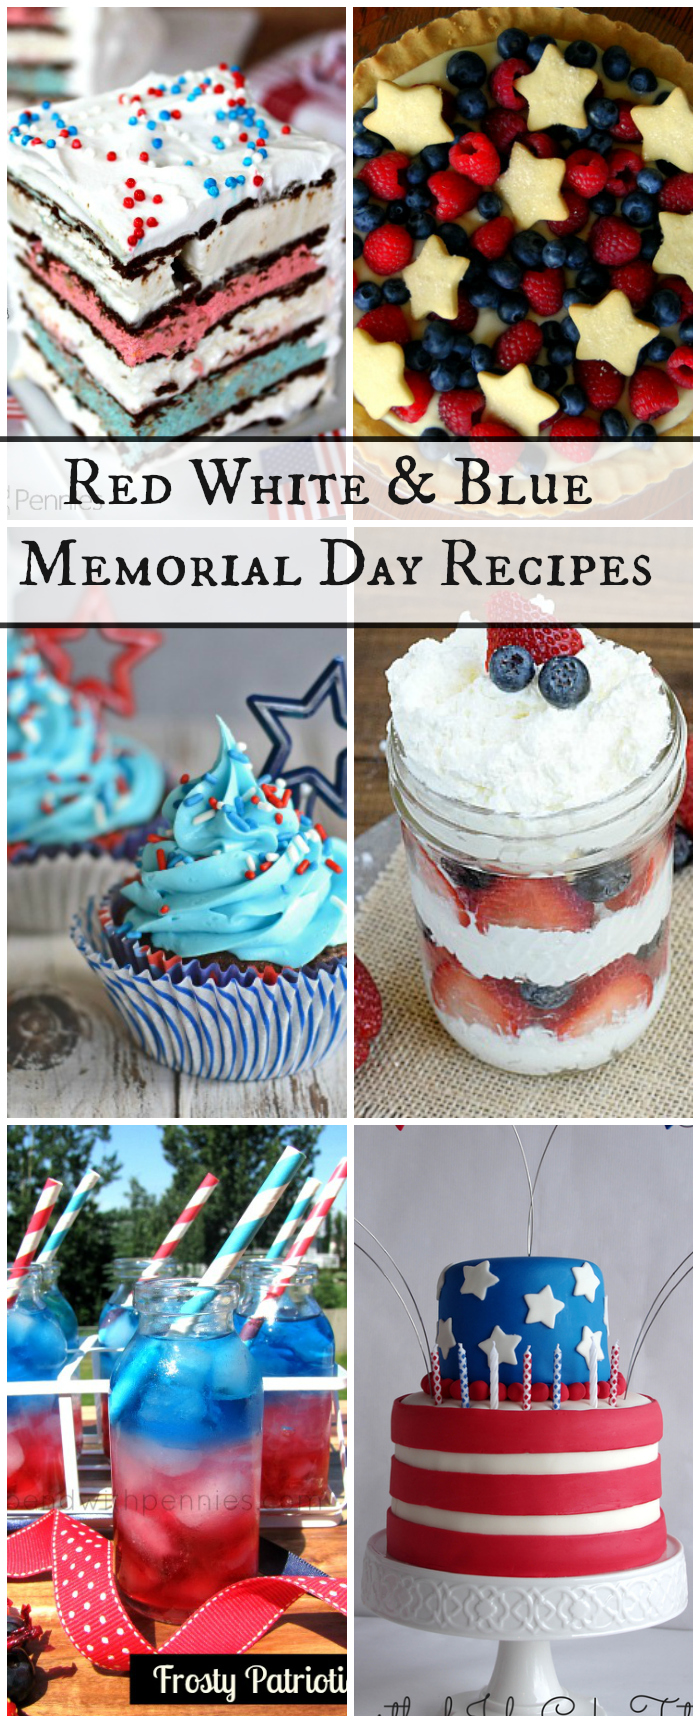 Red White & Blue Memorial Day Recipes Collection